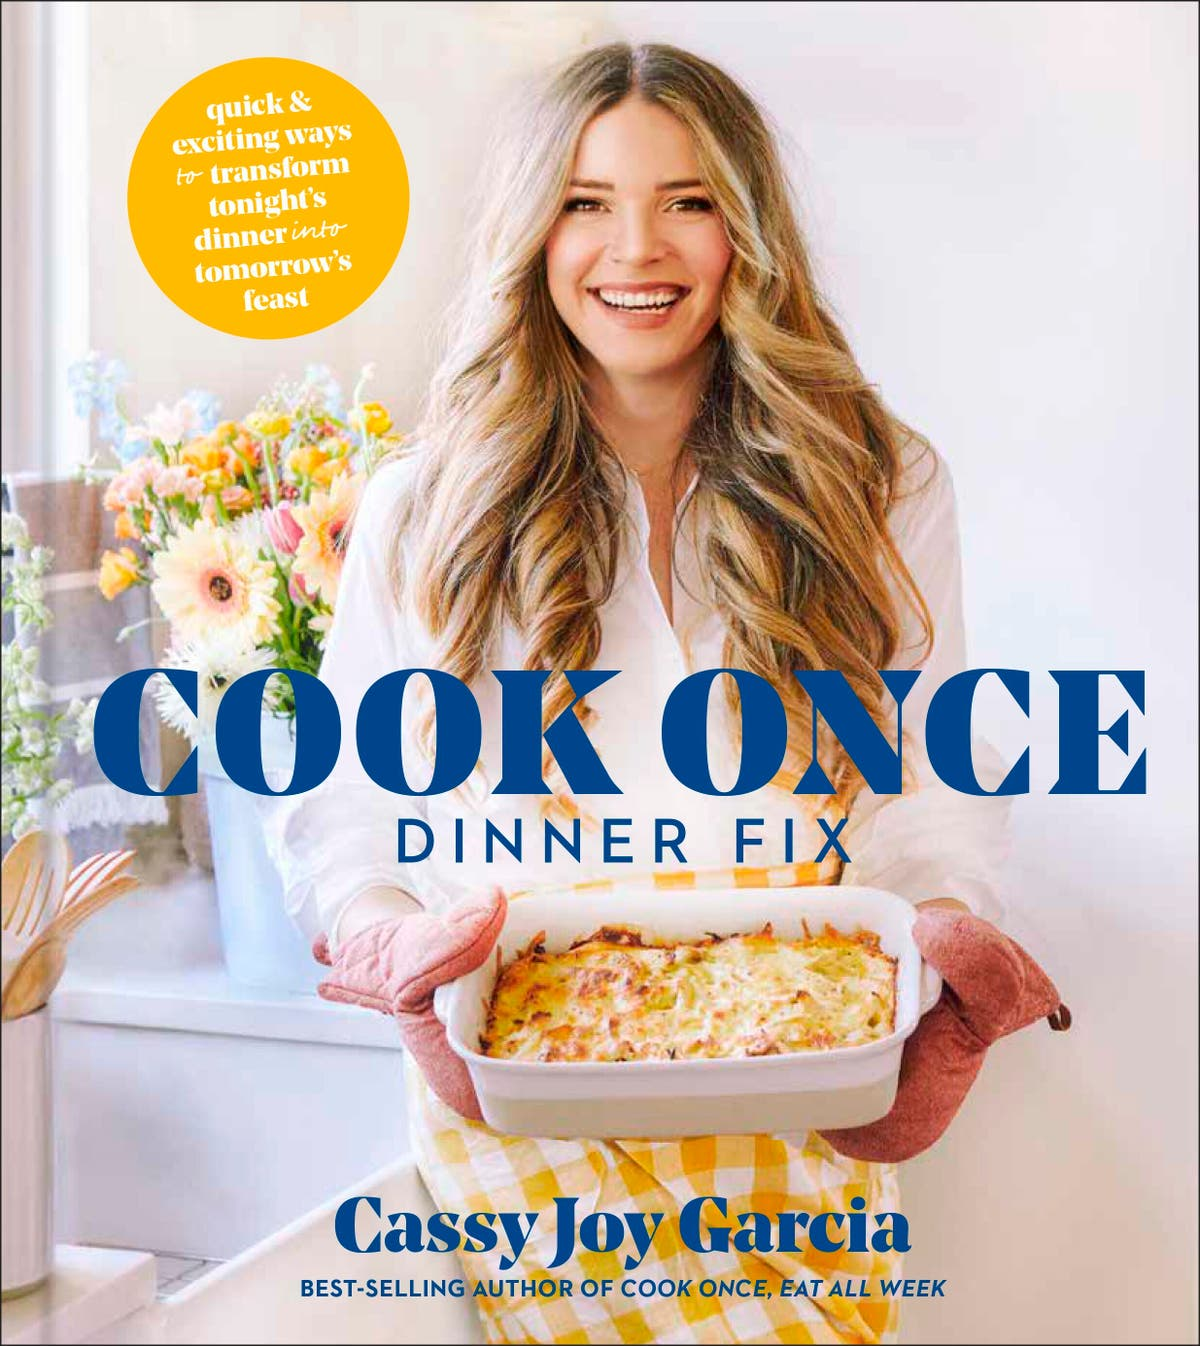 Cassy Joy Garcia offers a way to cook once, get 2 meals